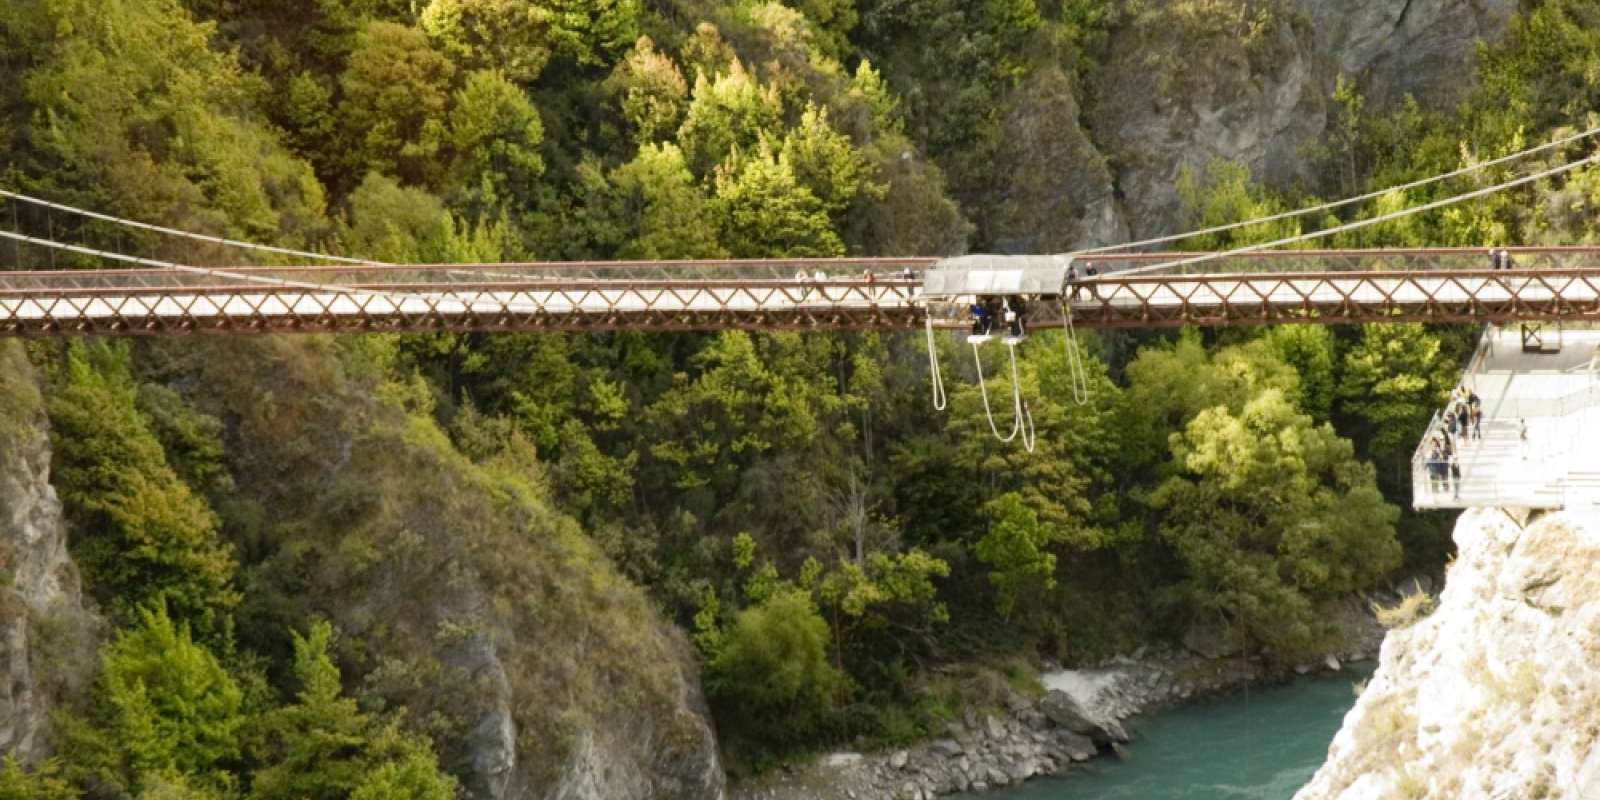 The Kawarau Suspension Bridge